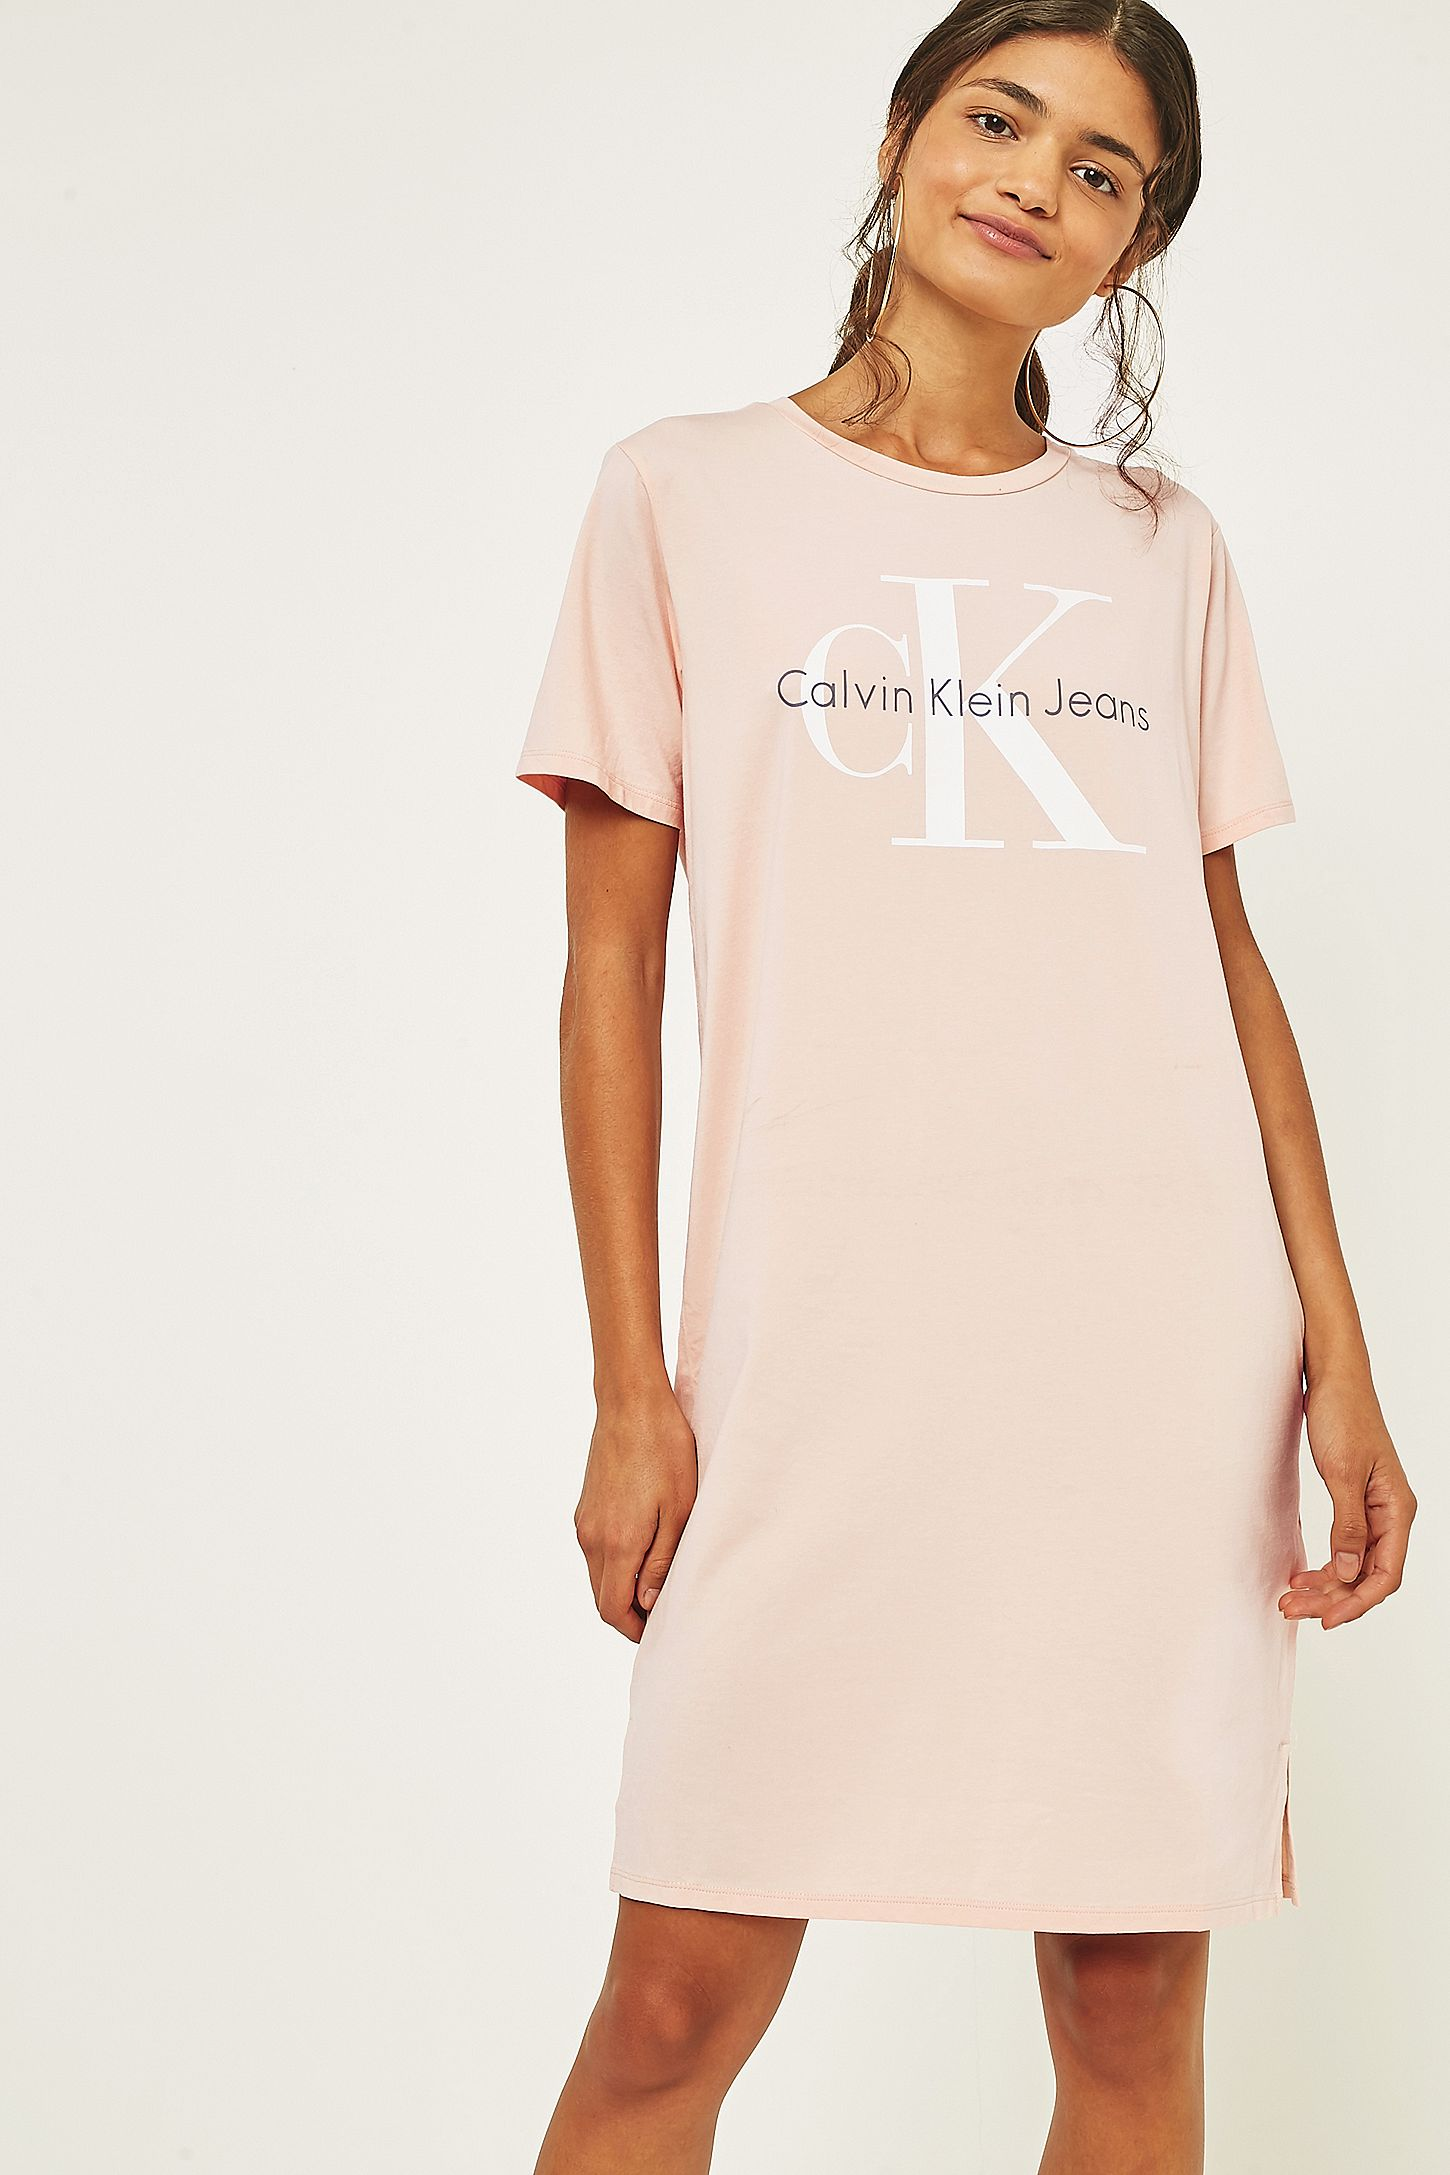 52ce6d076d5 Calvin Klein Pink Logo T-Shirt Dress